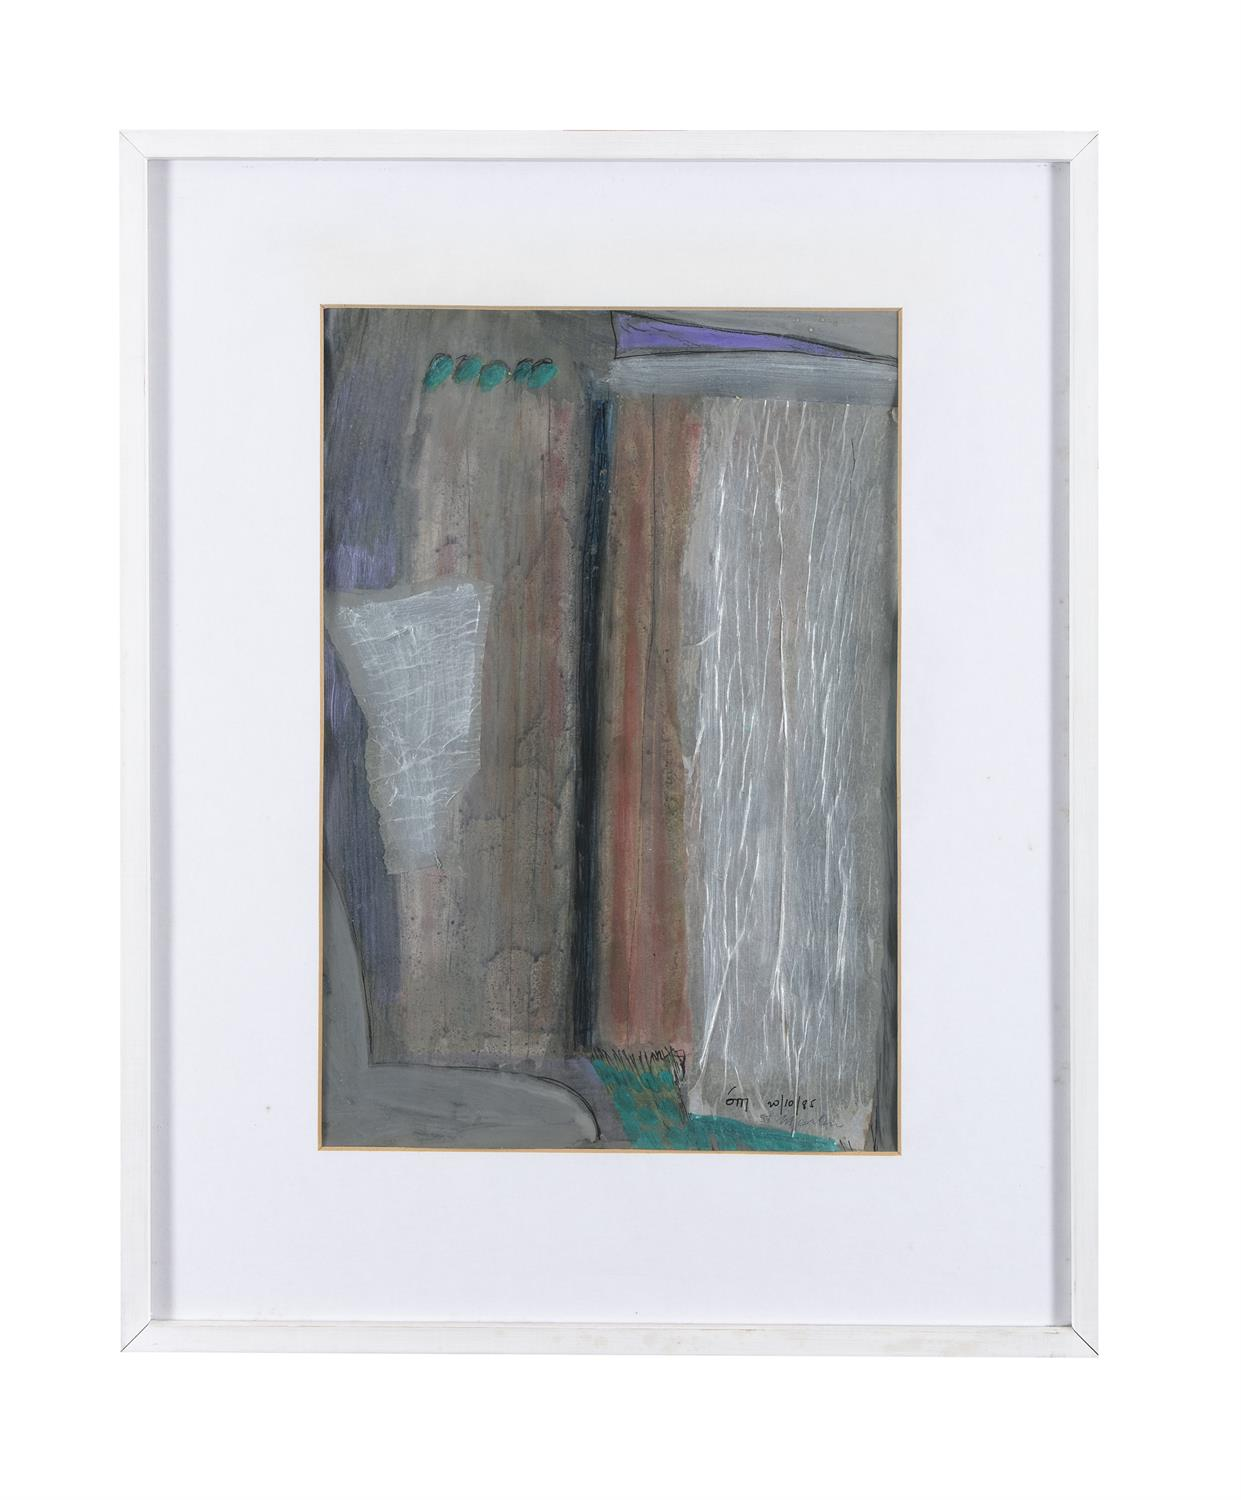 """Tony O'Malley HRHA (1913-2003) St. Martin Gouache and collage, 41.5 x 28.5cm (16¼ x 11¼"""") Signed - Image 2 of 5"""